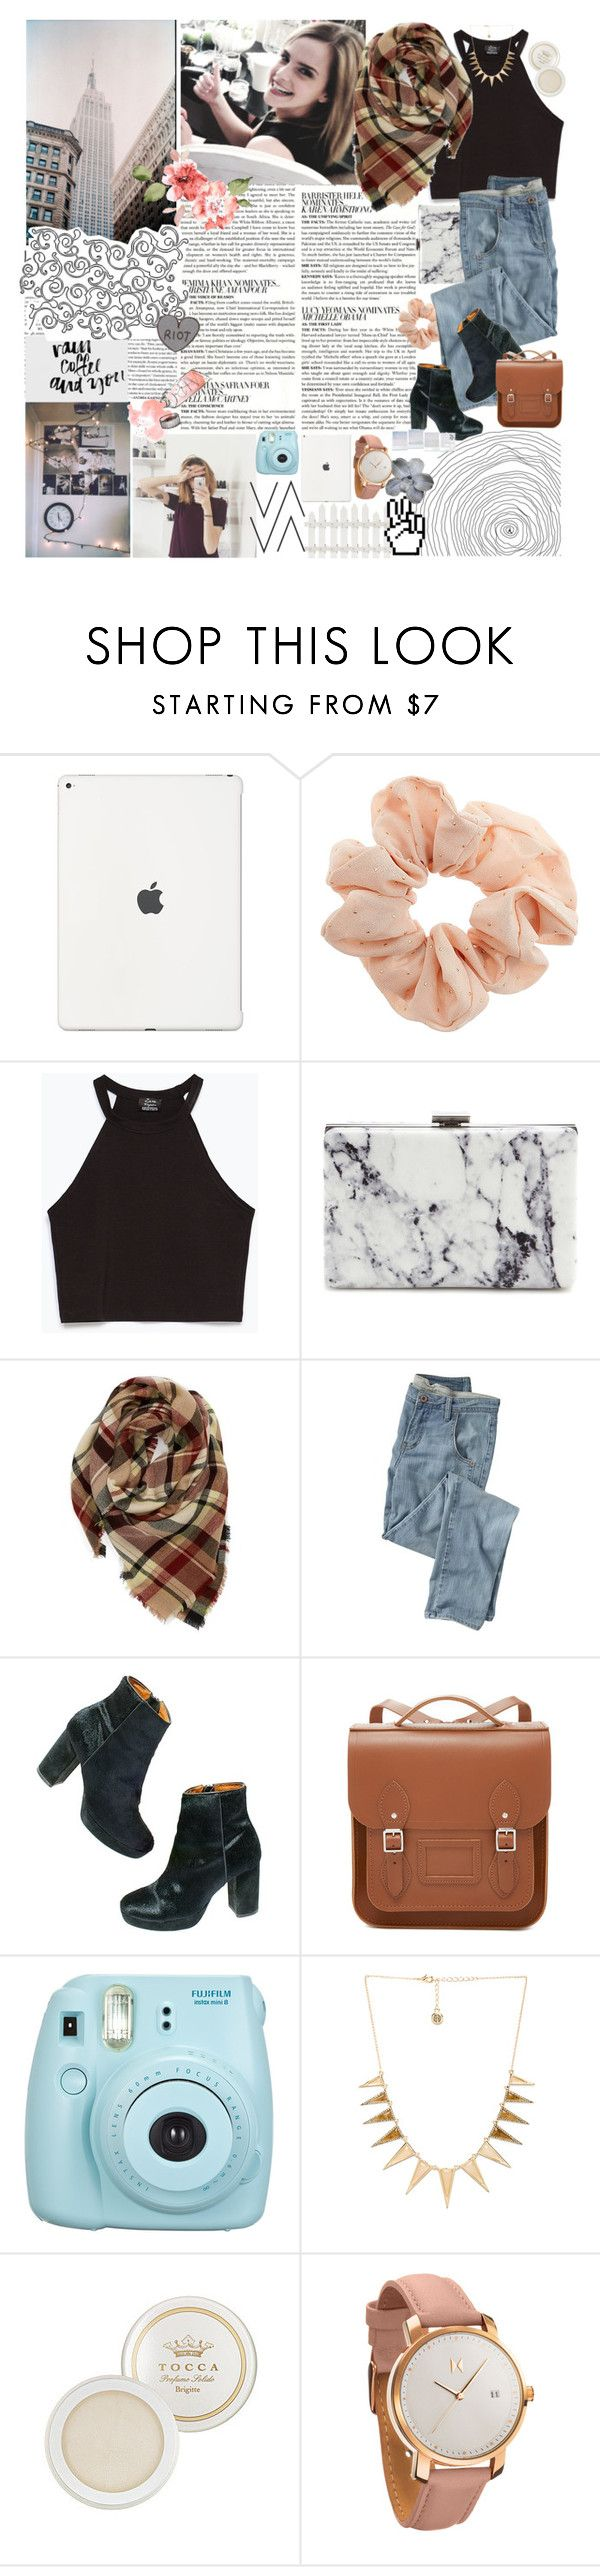 """""""i wanna be your left hand man."""" by k-rista ❤ liked on Polyvore featuring Emma Watson, McGinn, Topshop, Zara, Balenciaga, Evelyn K, Wrap, Madewell, Sugoi and The Cambridge Satchel Company"""